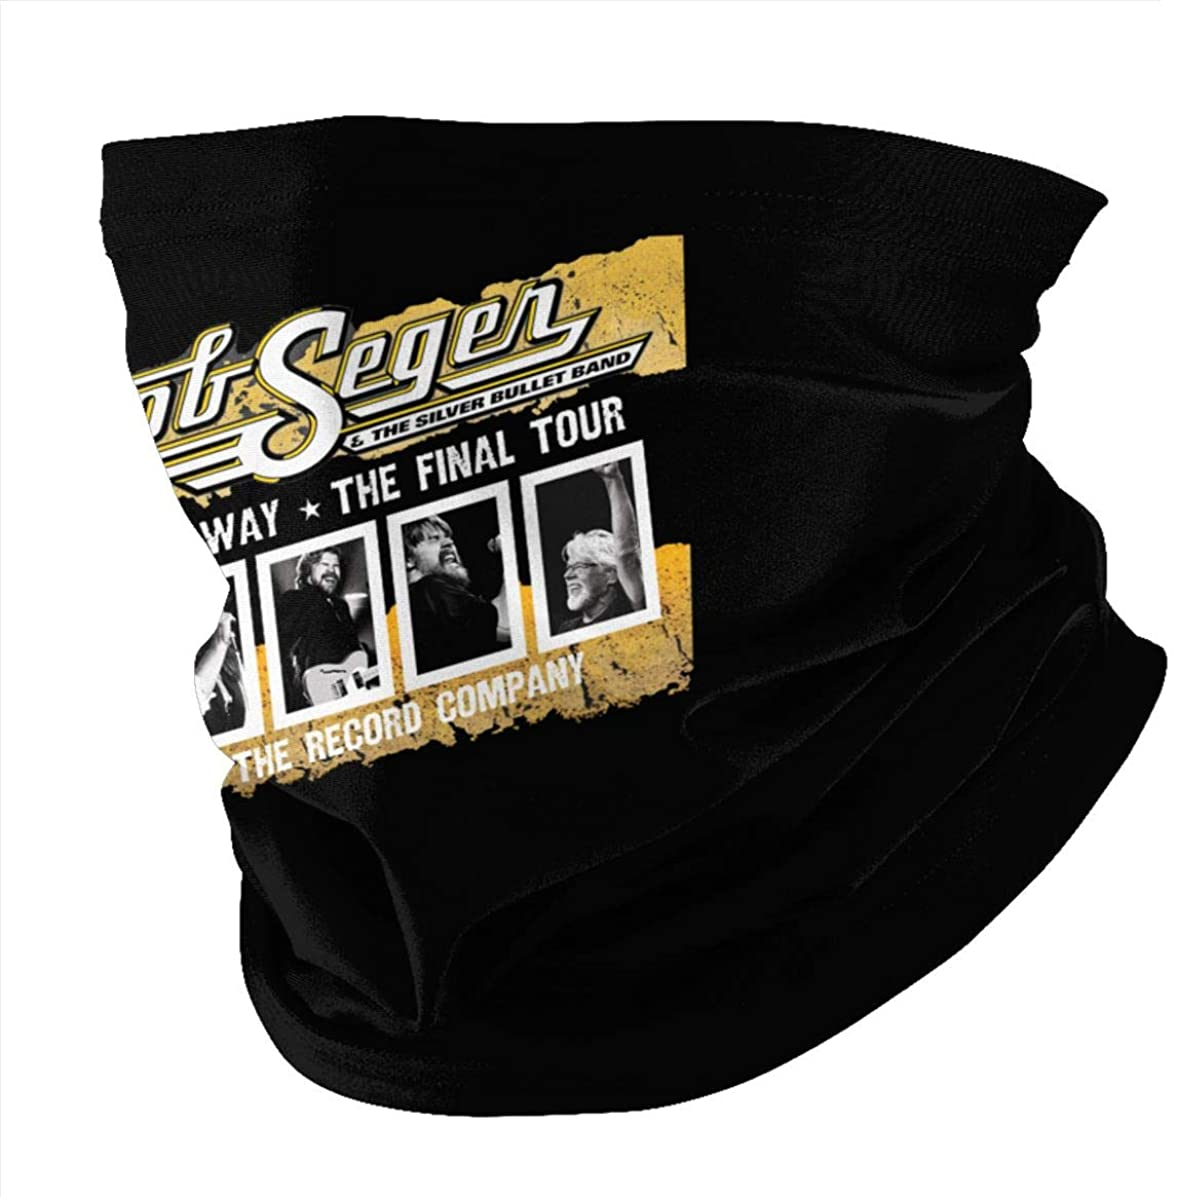 2 Pcs Face Mask With Pocket Bob The Final Seger Tour 2018 2019 Protection Mouth Cover Neck Bandanas Scarf For Washable Outdoor Dust Sun Resitant Men Women